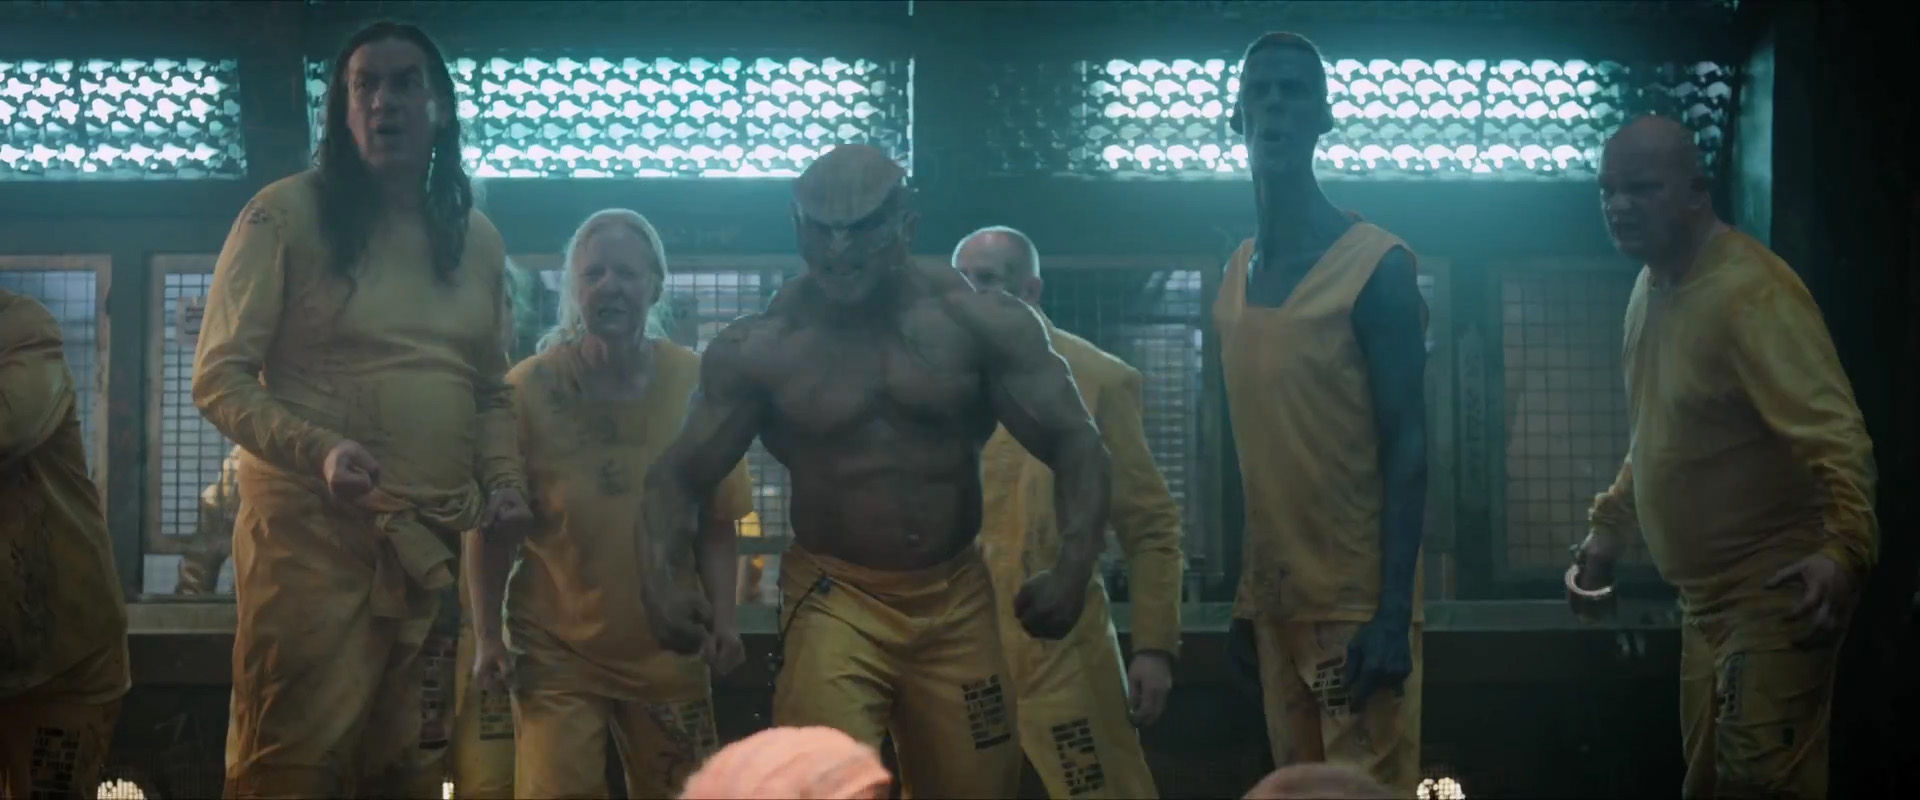 Guardians of the Galaxy Trailer Kyln Prison Inmates Guardians of the Galaxy Trailer   Kyln Prison Inmates